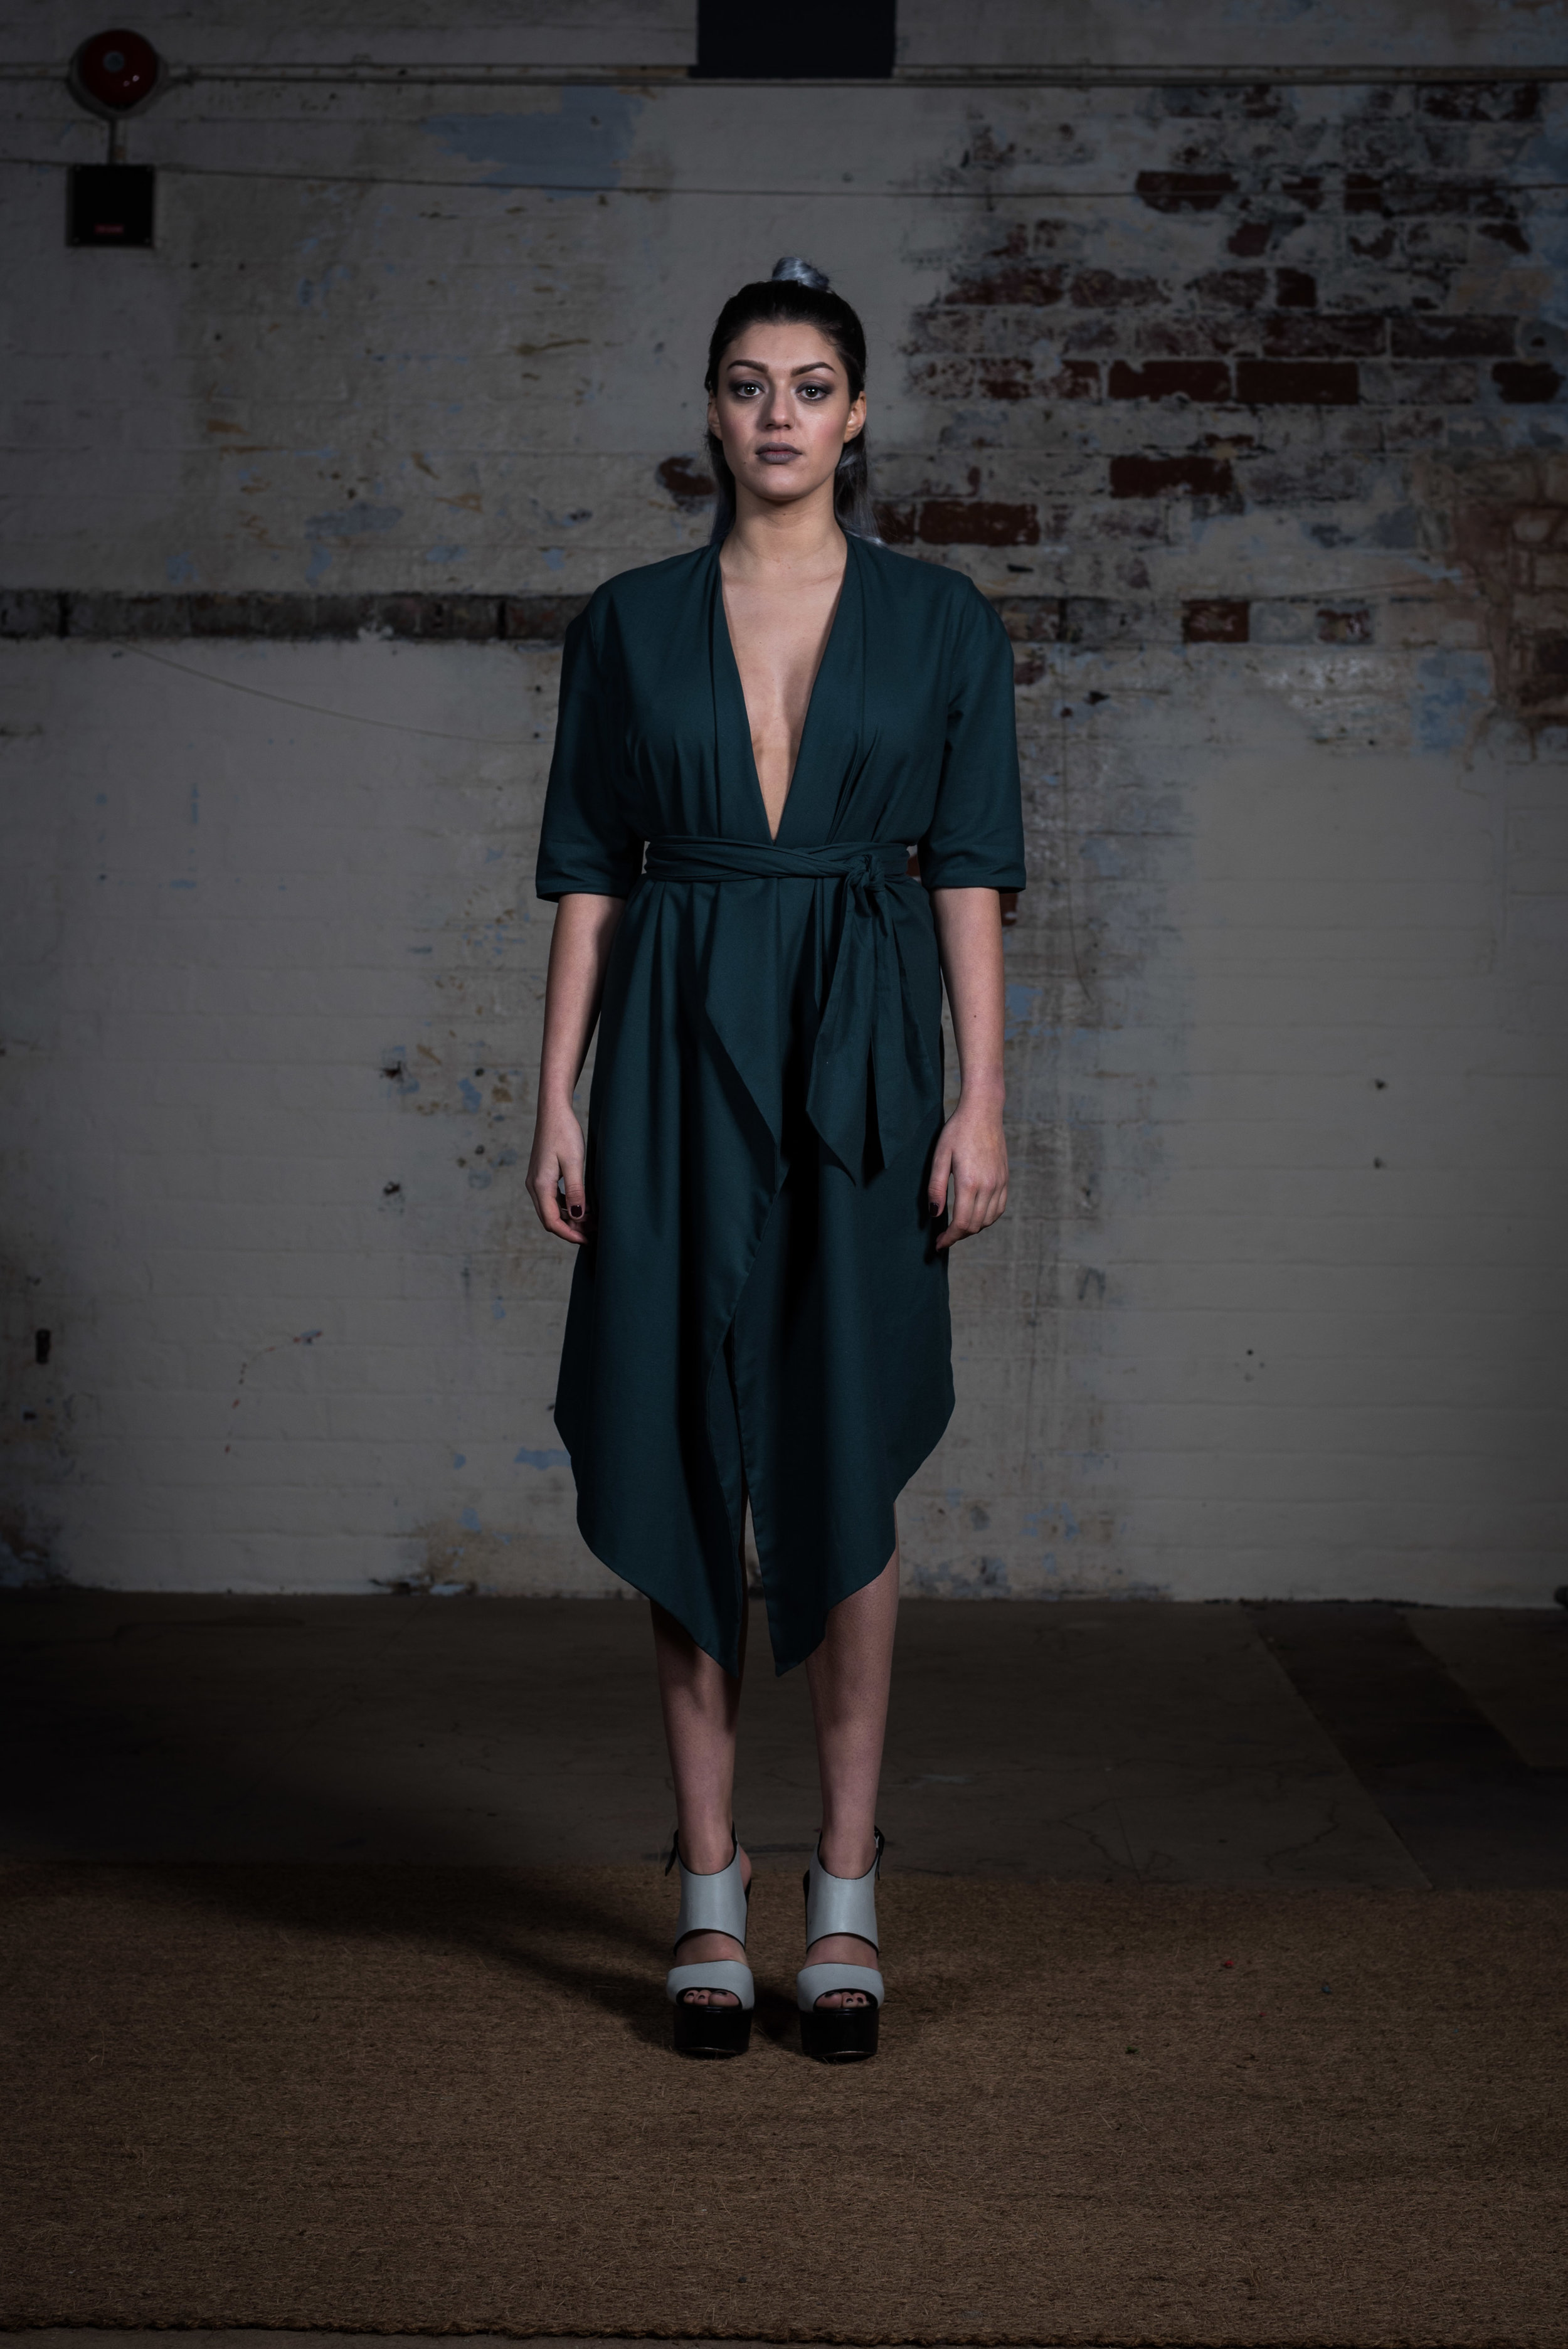 zaramia-ava-zaramiaava-leeds-fashion-designer-ethical-sustainable-teal-mai-jacket-dress-versatile-drape-skirt-grey-yuko-cowl-dress-styling-location-womenswear-models-photoshoot-7